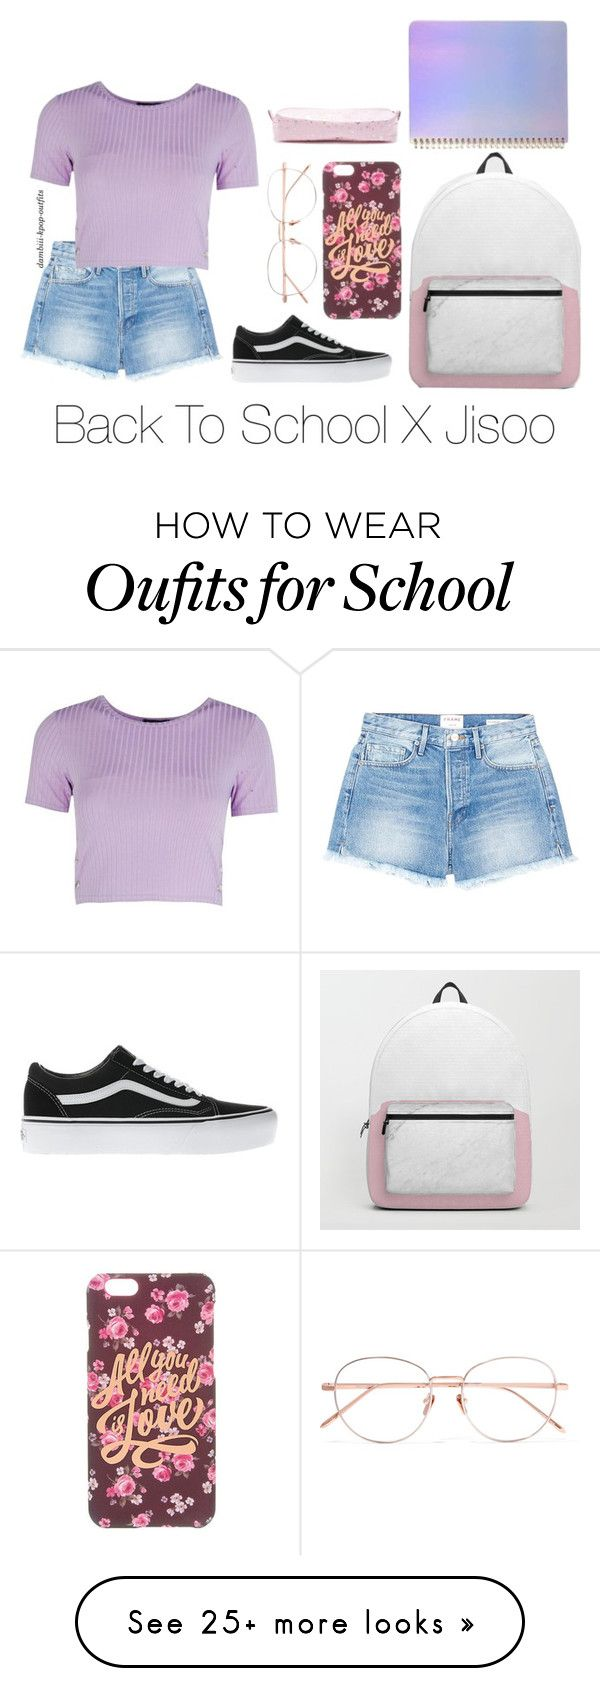 """Back to School X Jisoo"" by dambiii on Polyvore featuring Frame, Boohoo, Vans, Linda Farrow, ban.do, Forever 21, BlackPink and jisoo"